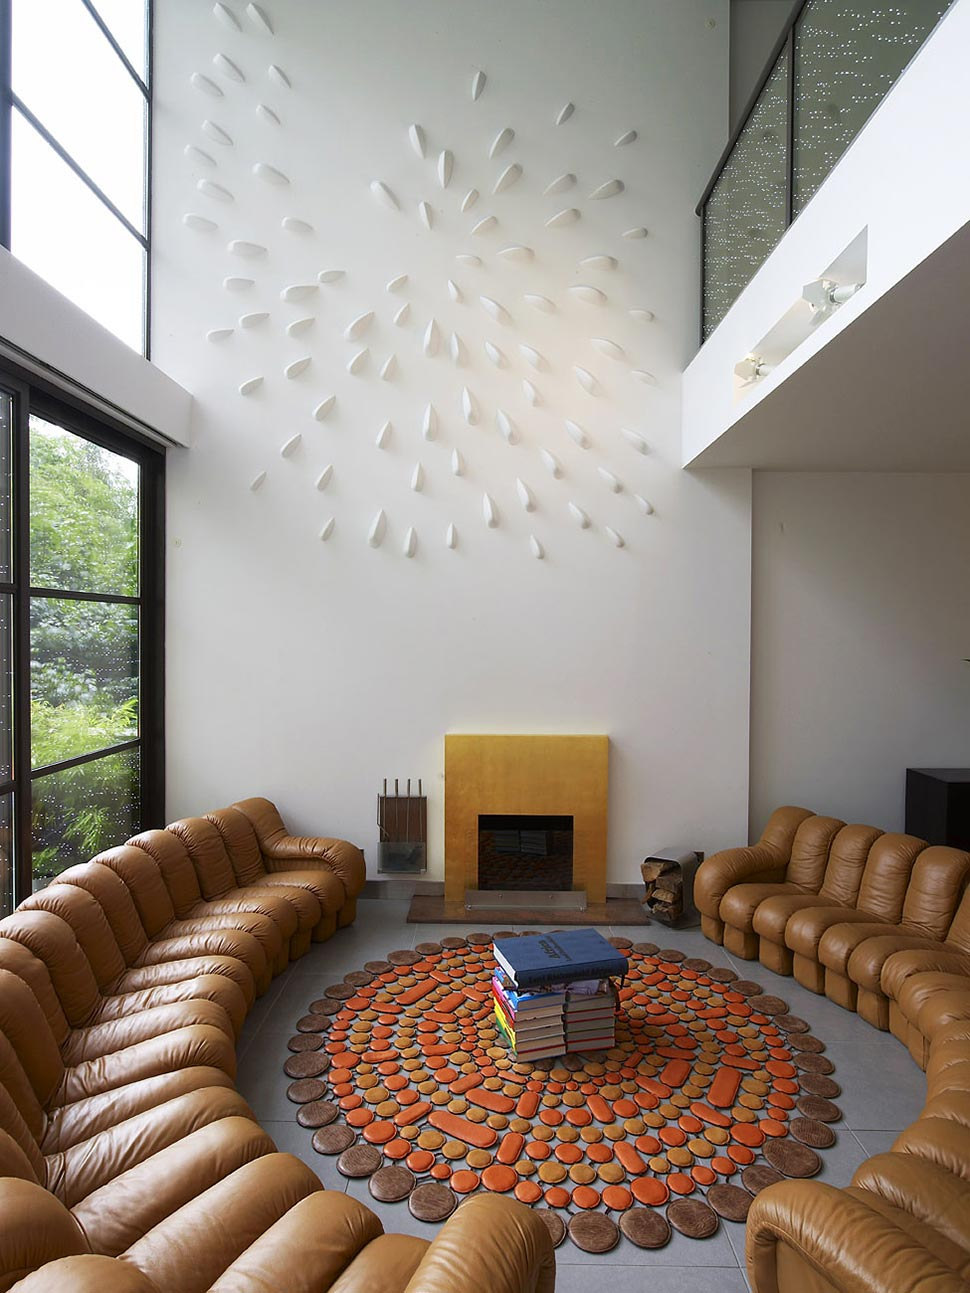 Fireplace, Living Space, Townhouse Renovation in Gramercy Park, New York